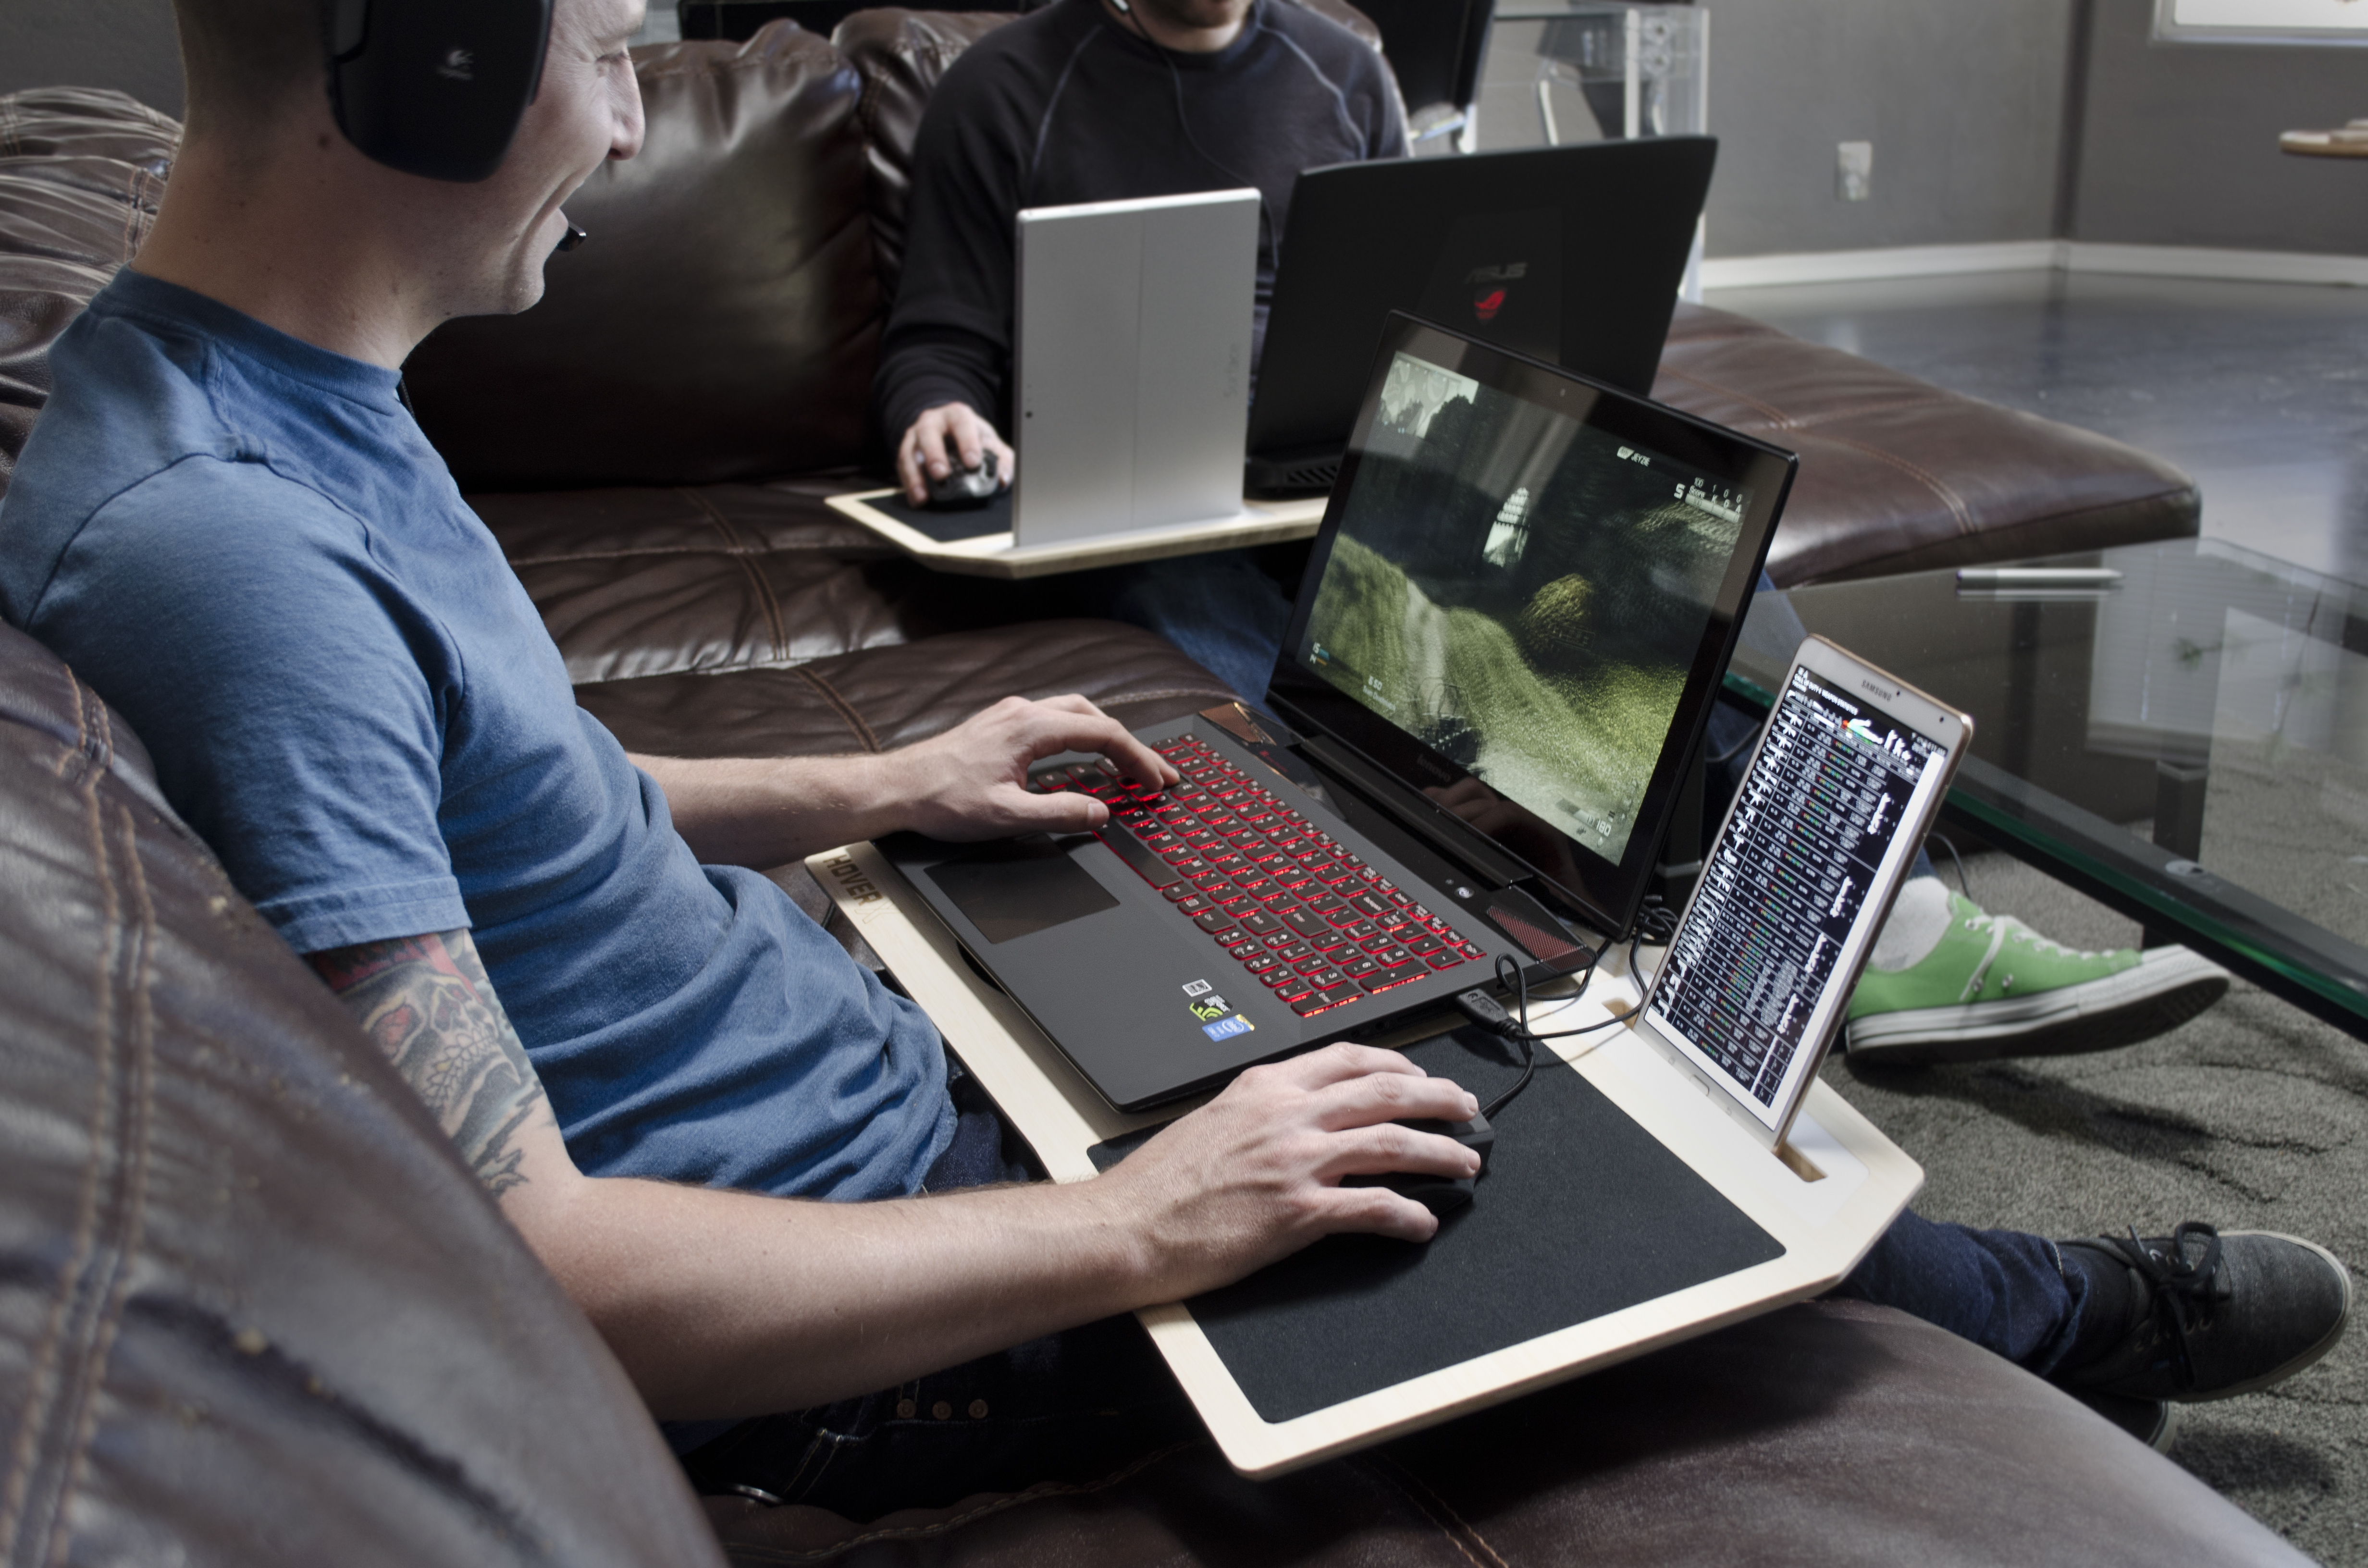 Hover X Is The Crazy Desk That Turns Your Lap And Anywhere You Sit Into A Pc Gaming Space Venturebeat